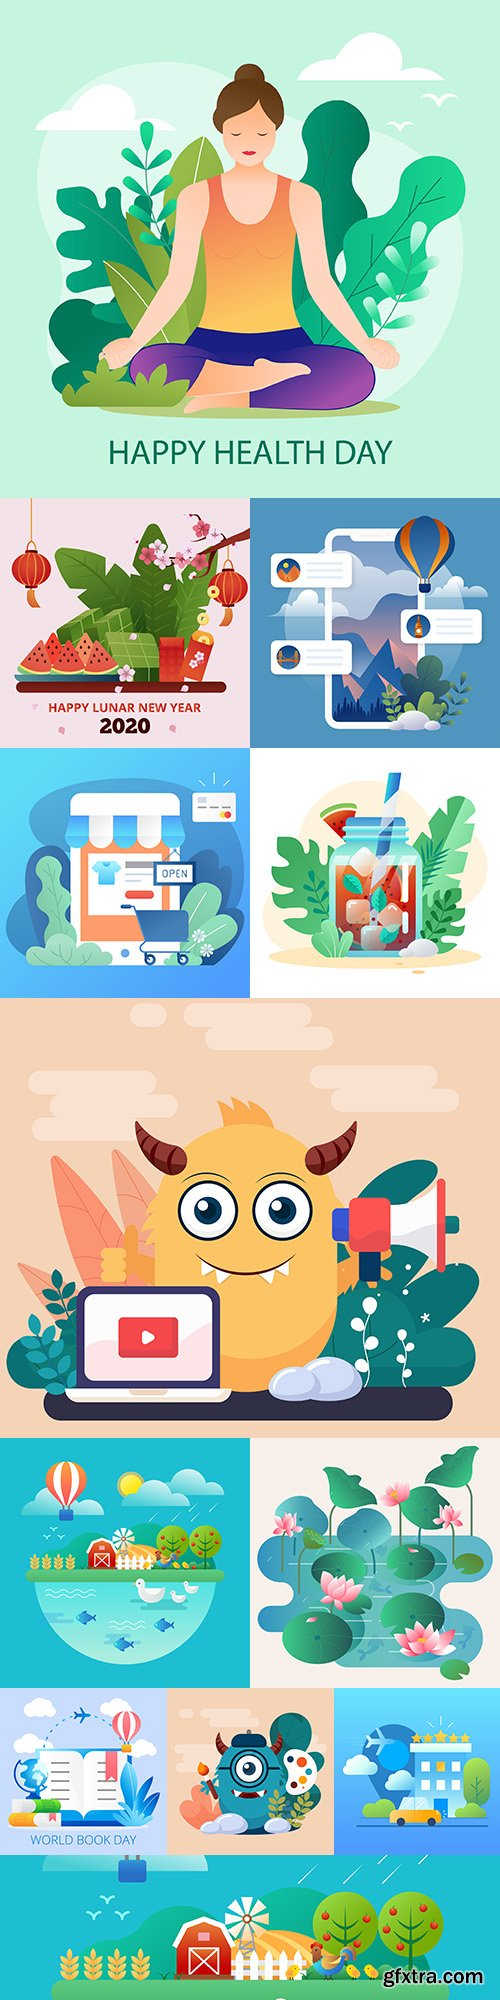 Lifestyle and technology collection flat design illustration